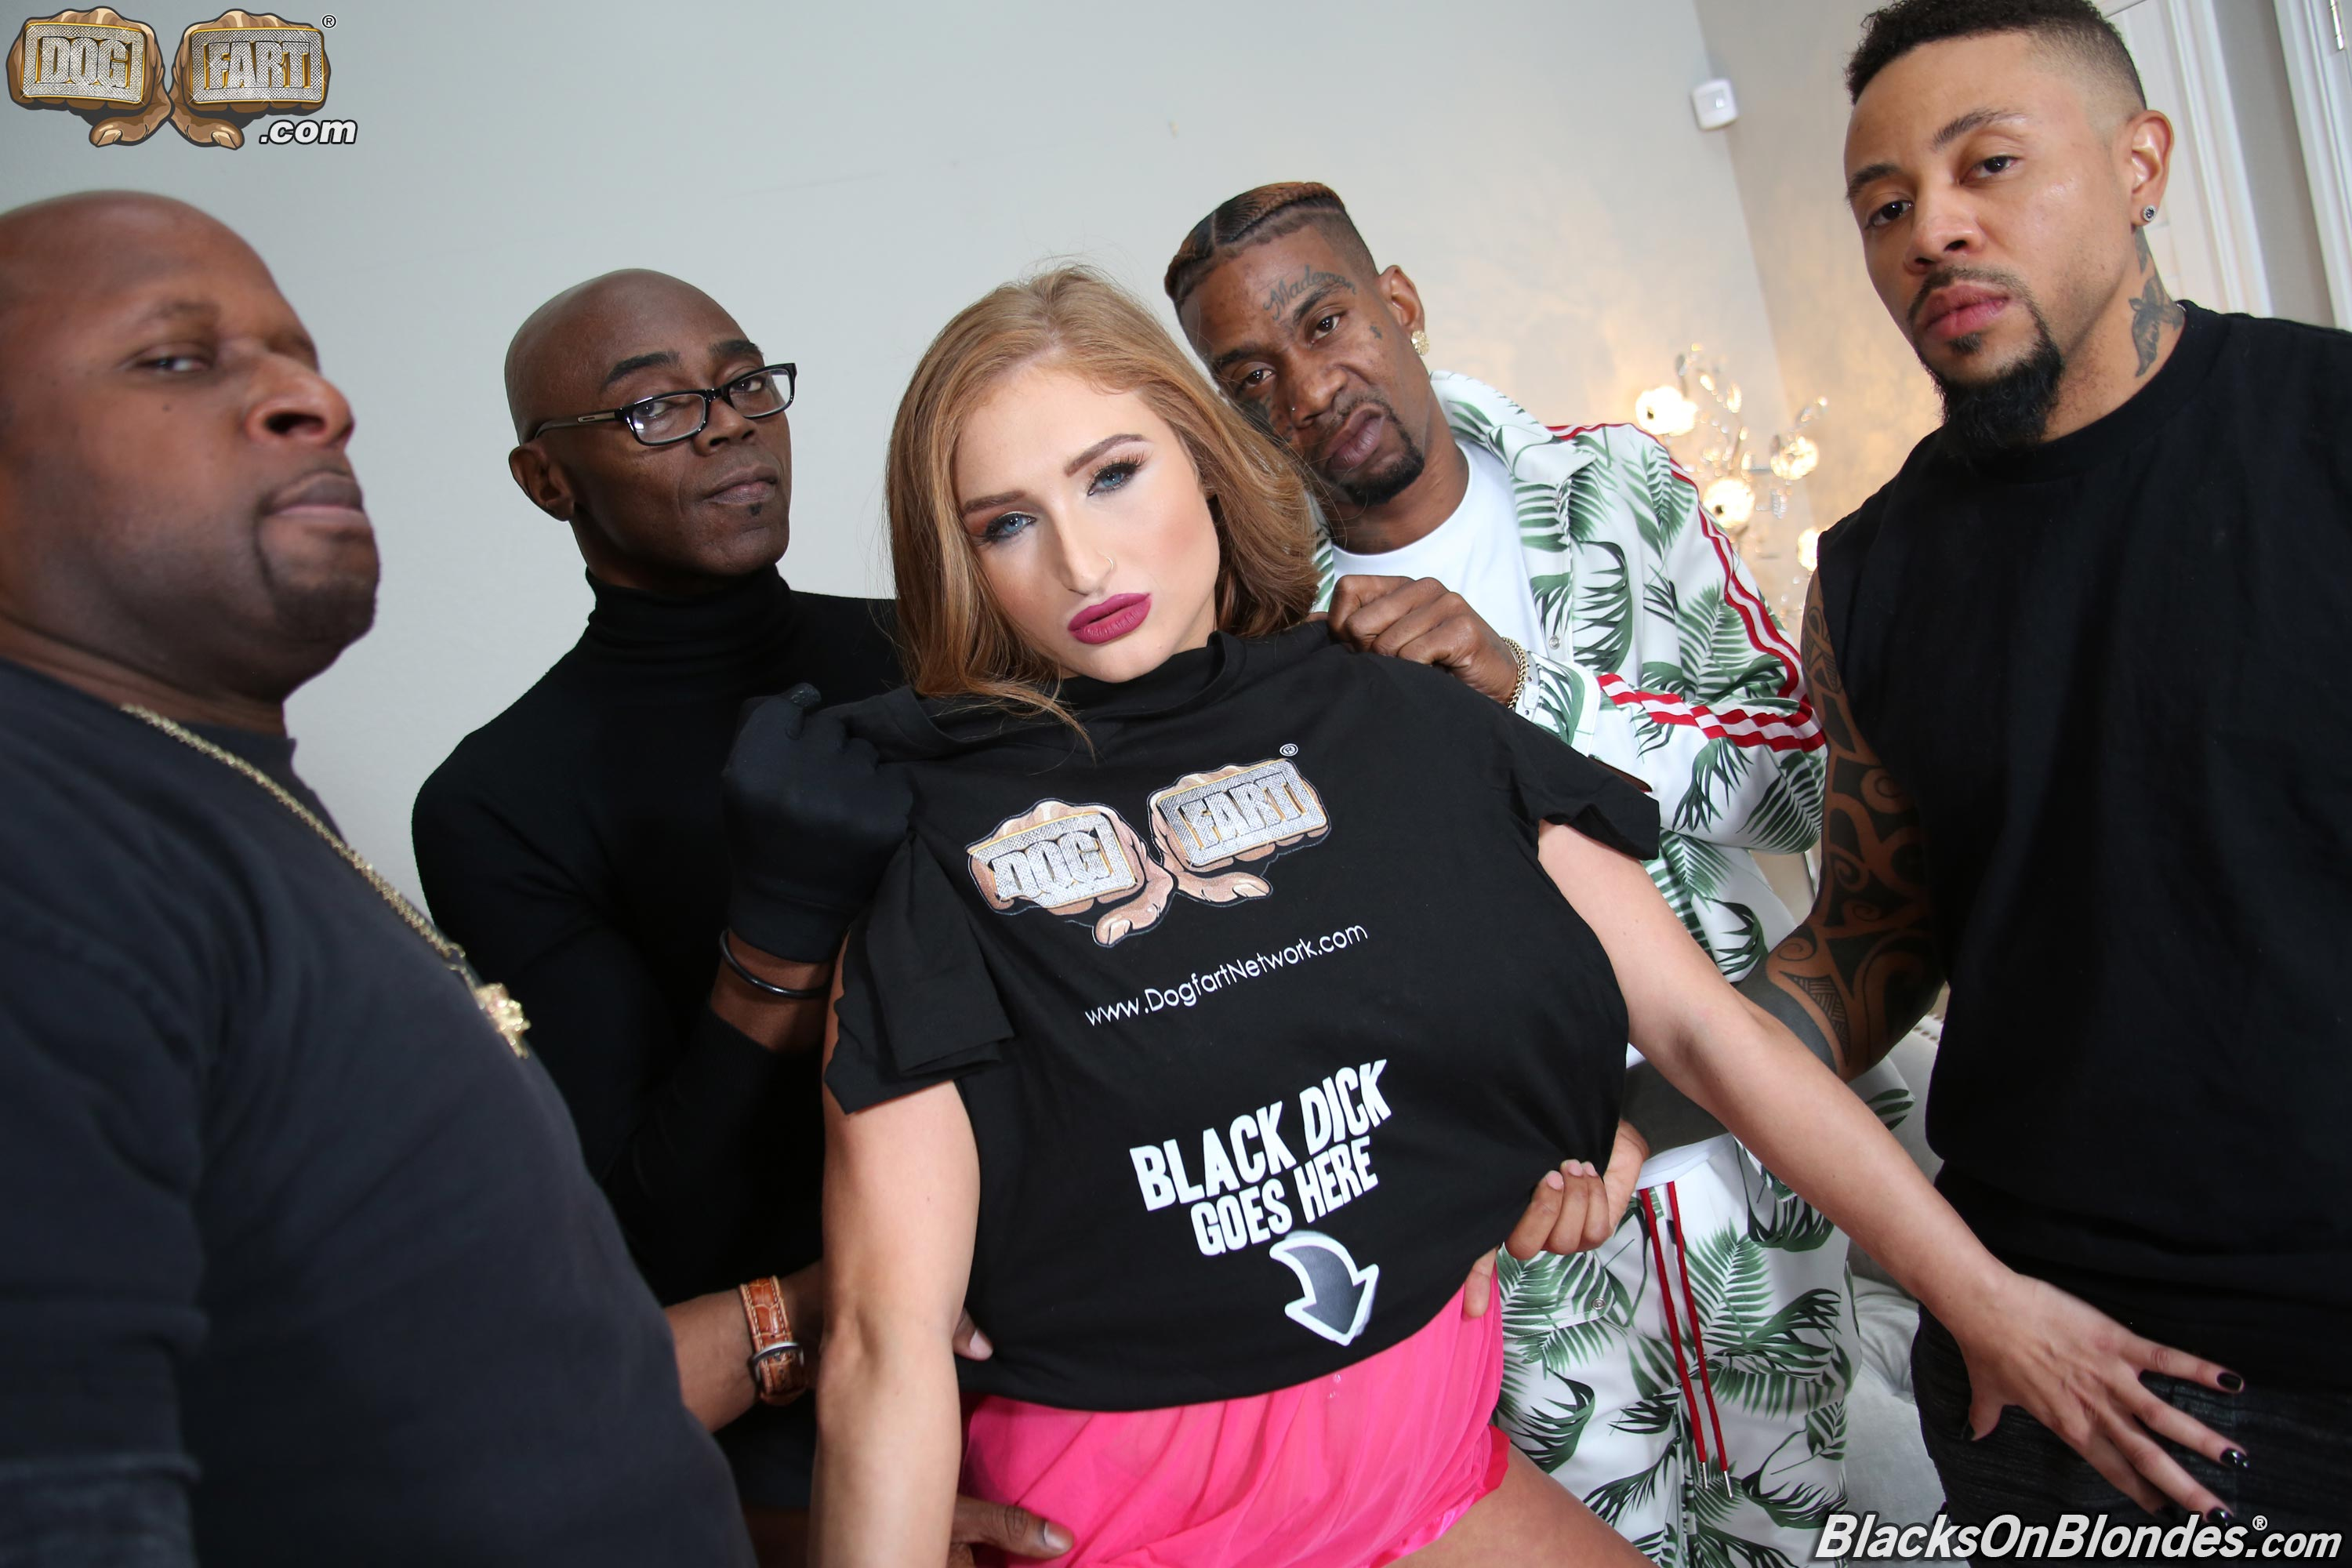 Dogfart 'Skylar Snow - Blacks On Blondes' starring Skylar Snow (photo 2)